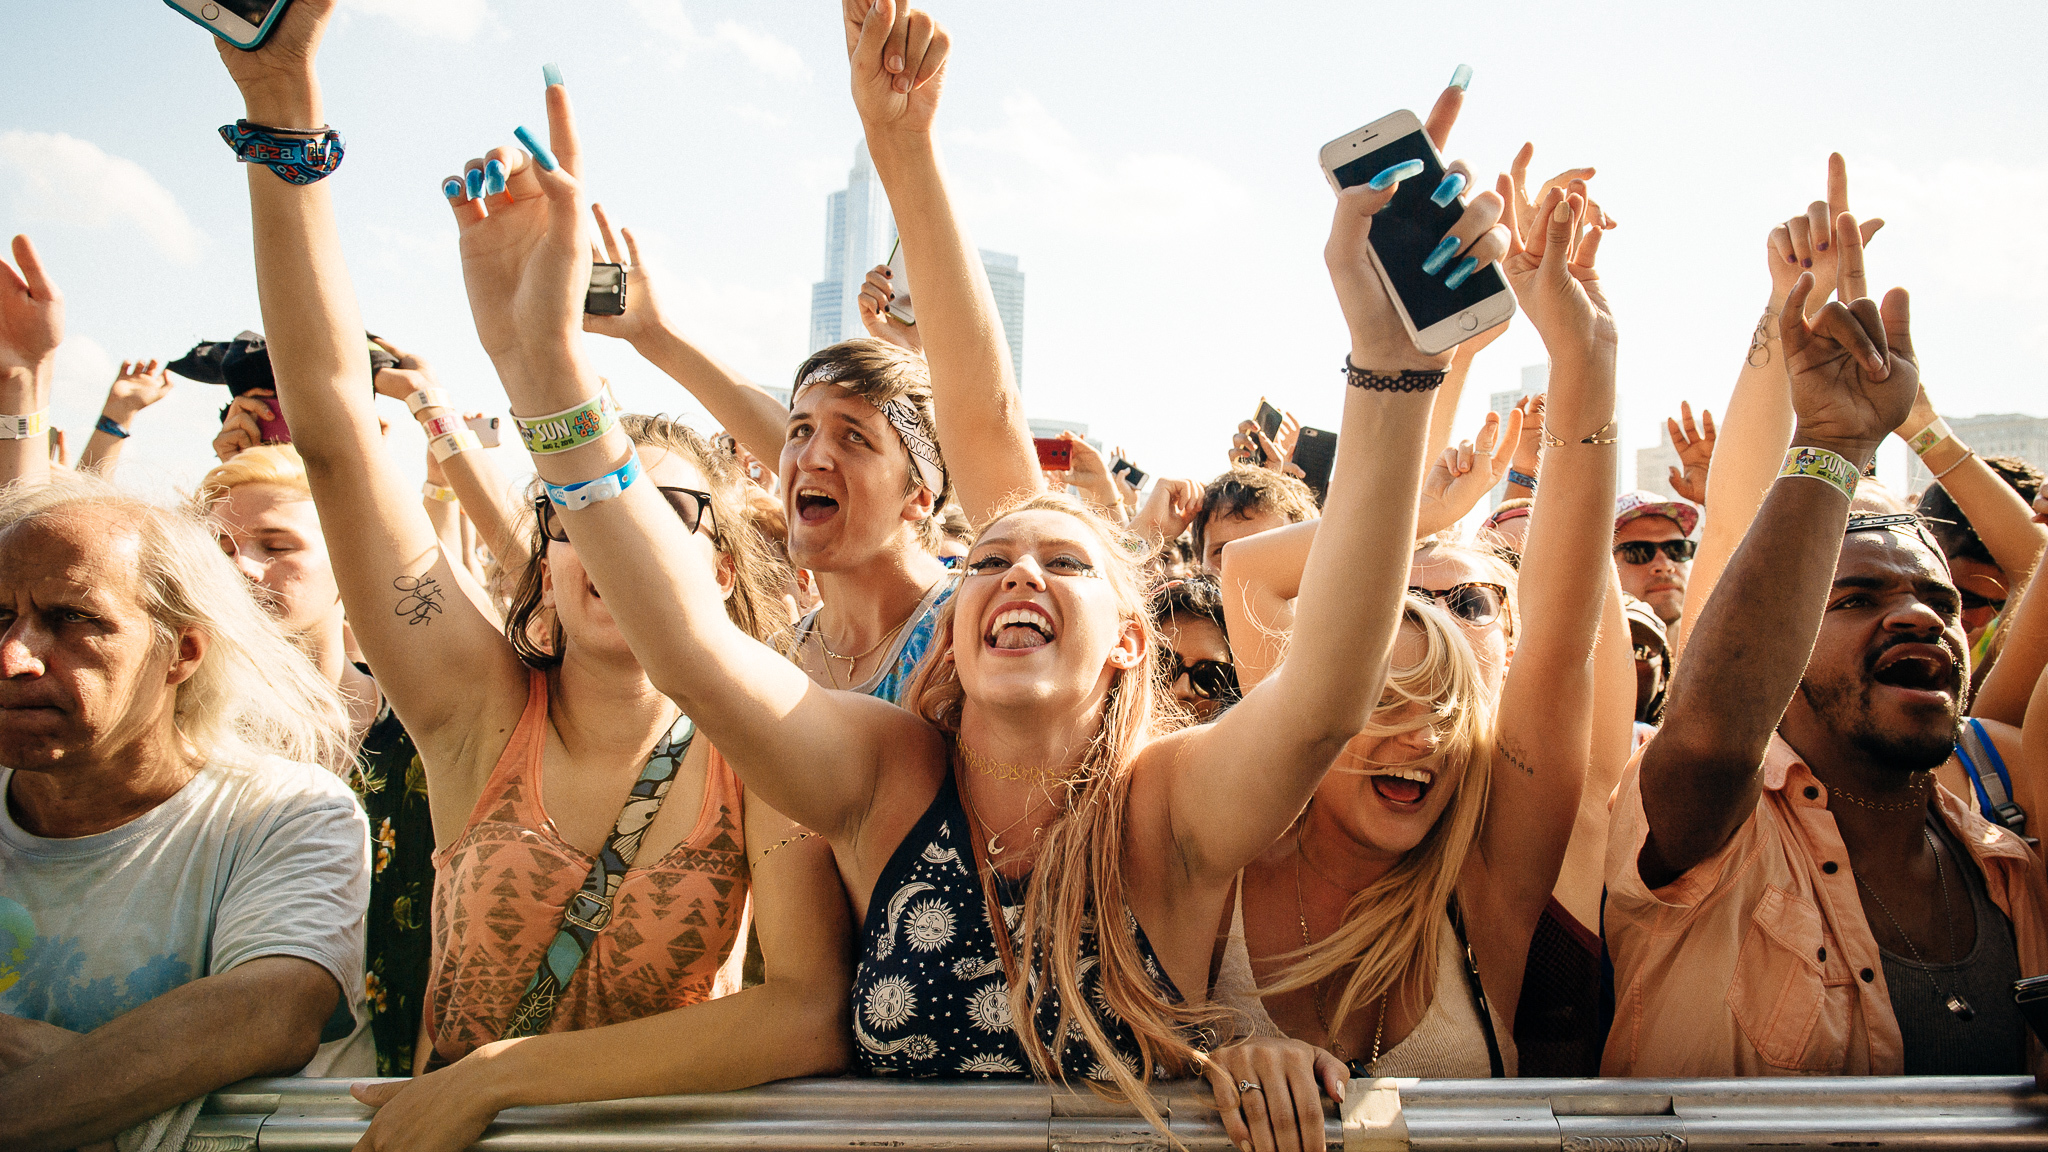 Lollapalooza 2015, Sunday: Faces in the crowd